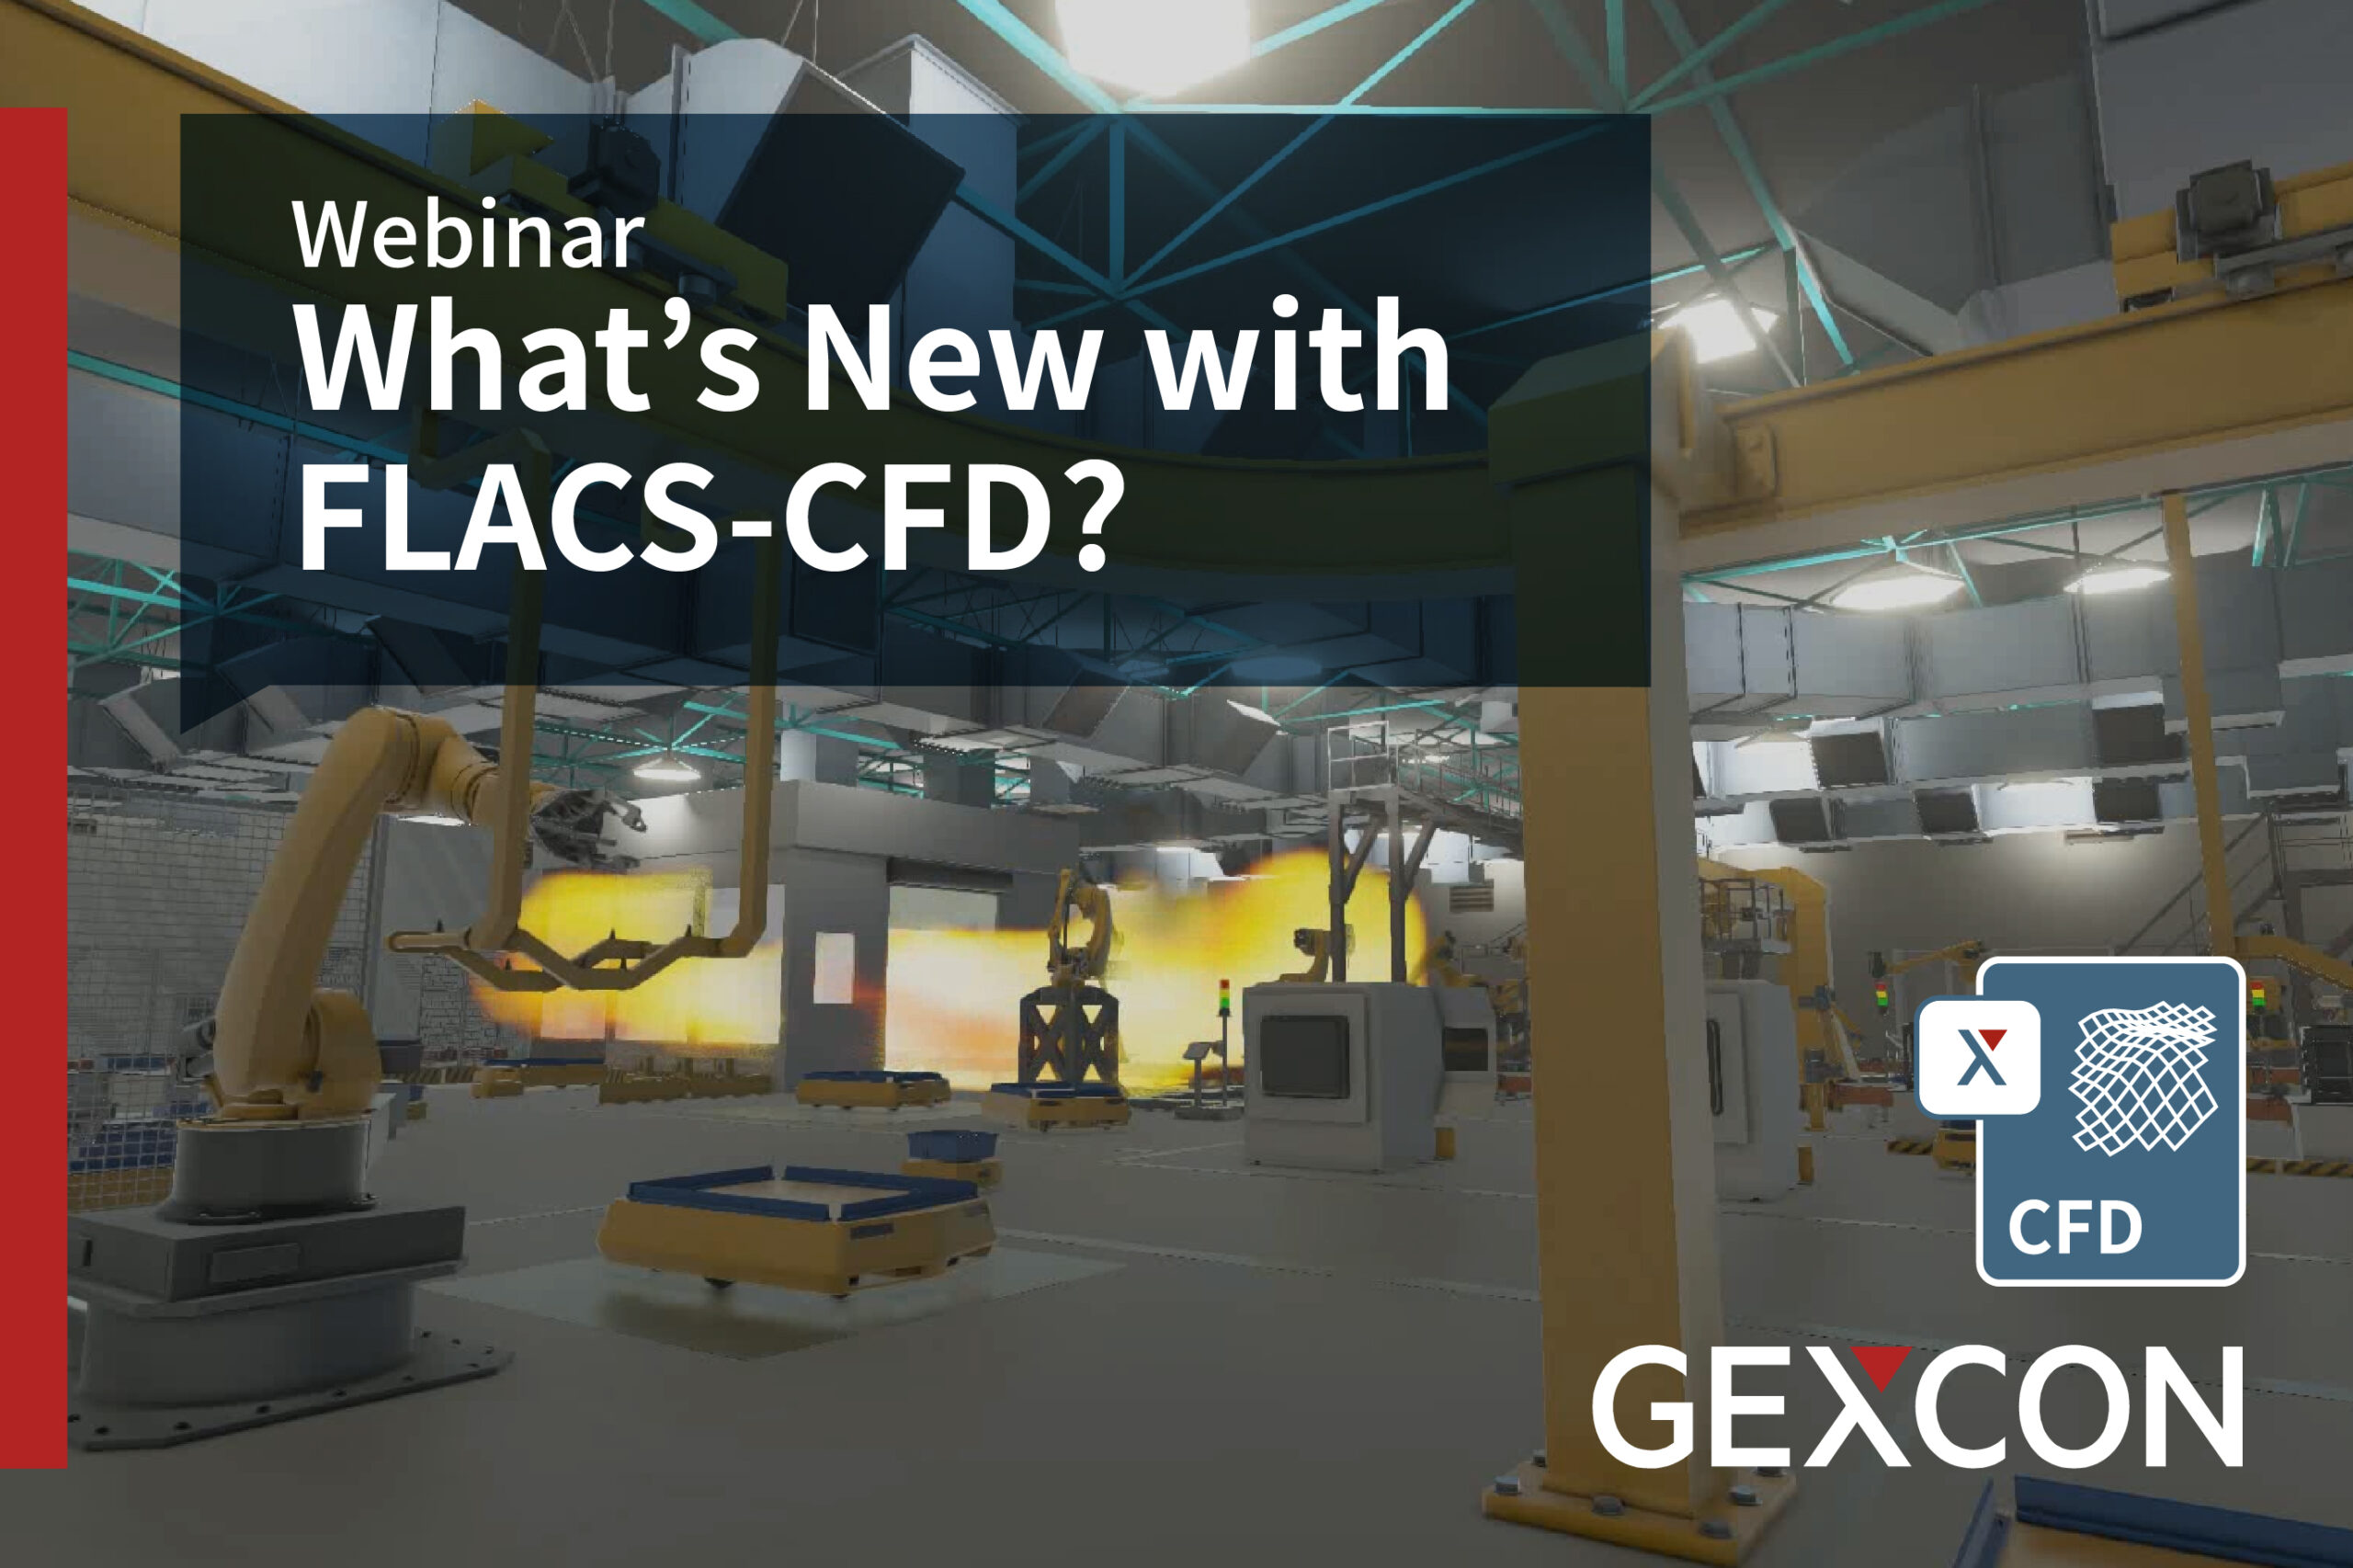 Webinar - What's New with FLACS-CFD?